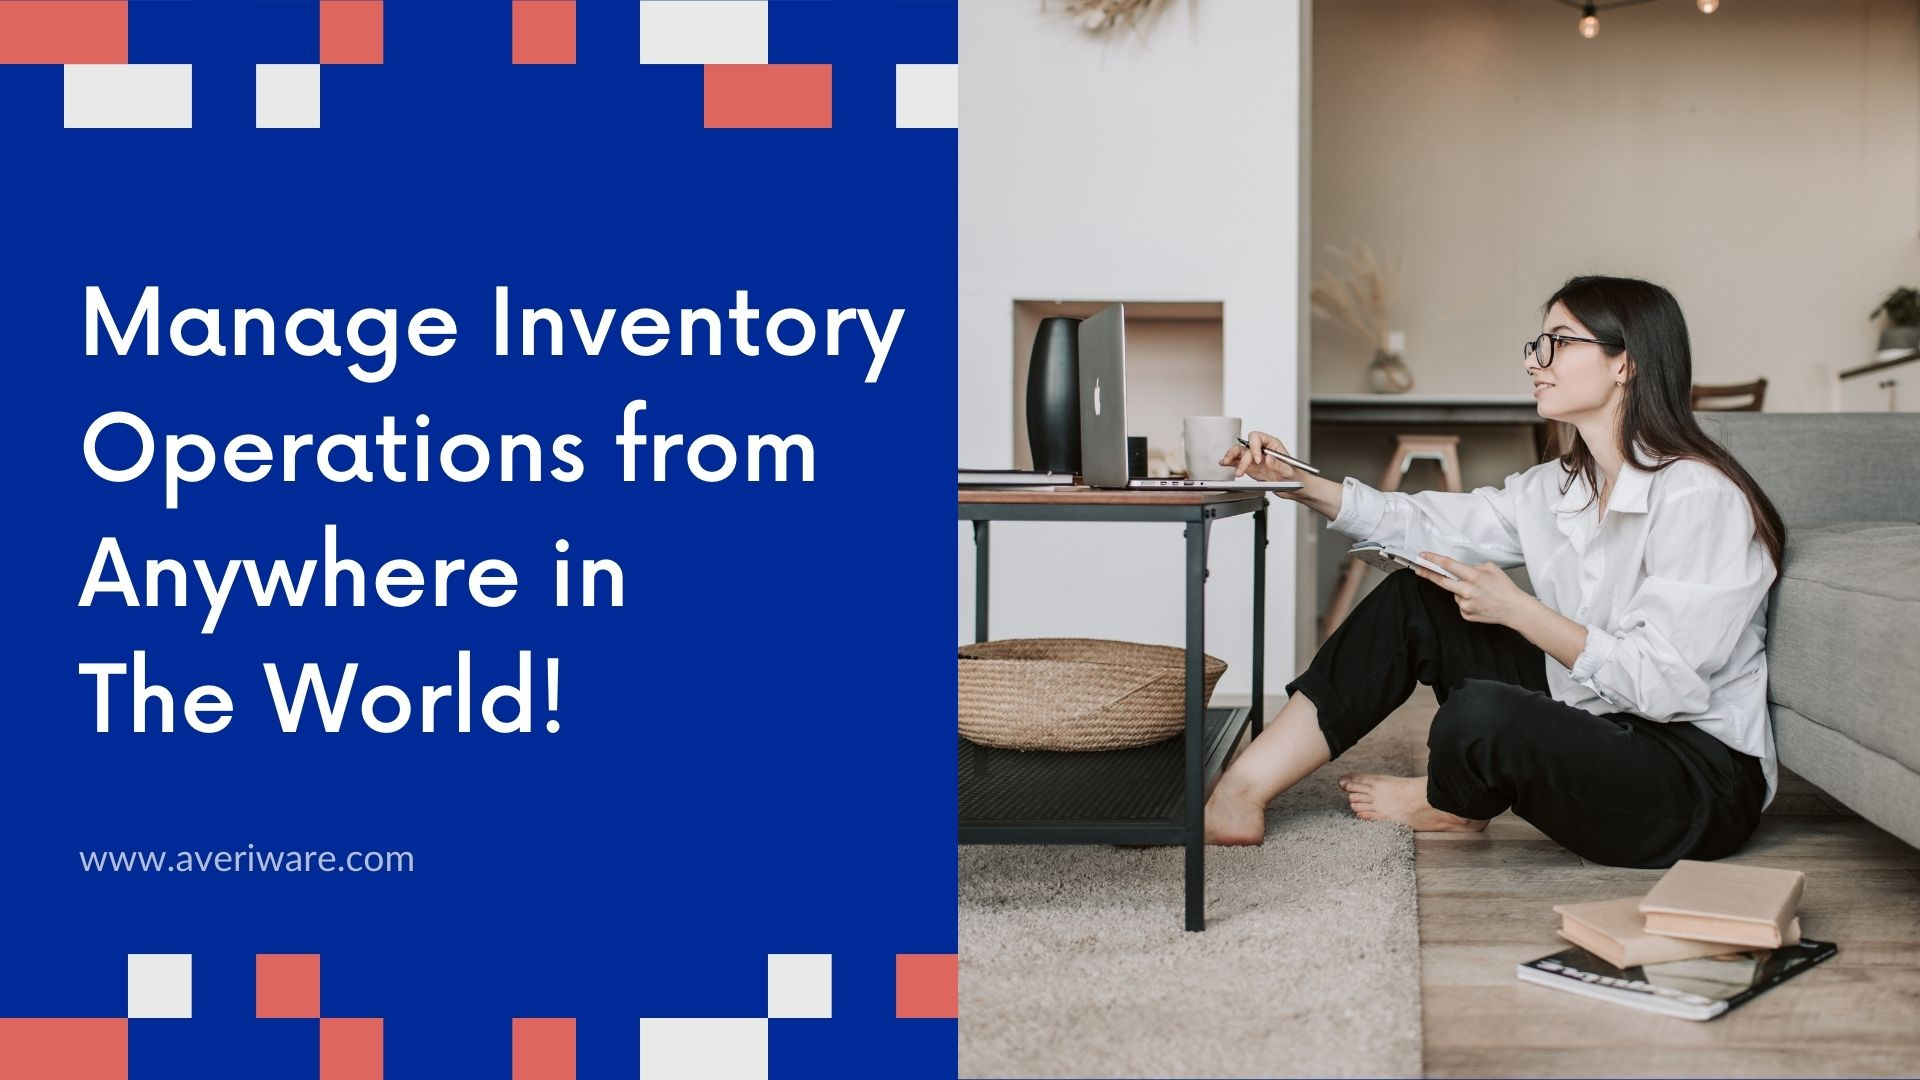 Manage Inventory Operations from Anywhere in The World